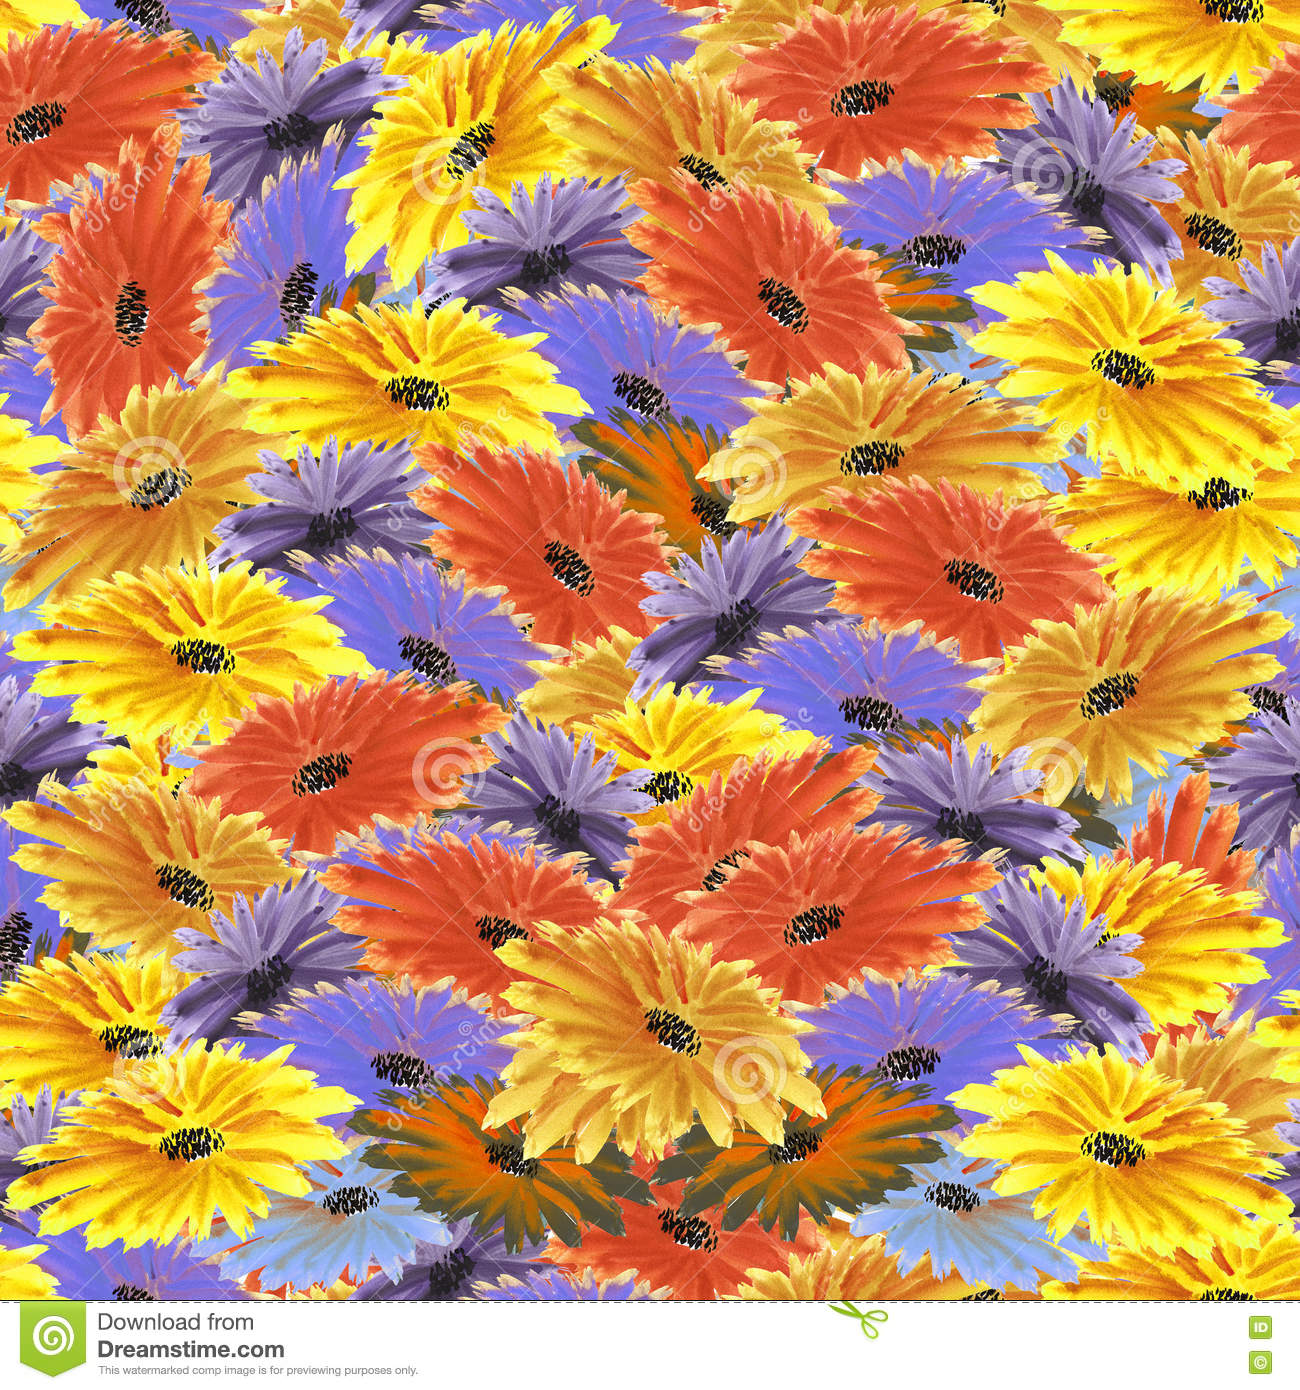 Floral pattern red orange yellow violet purple blue flowers floral pattern red orange yellow violet purple blue flowers flower mightylinksfo